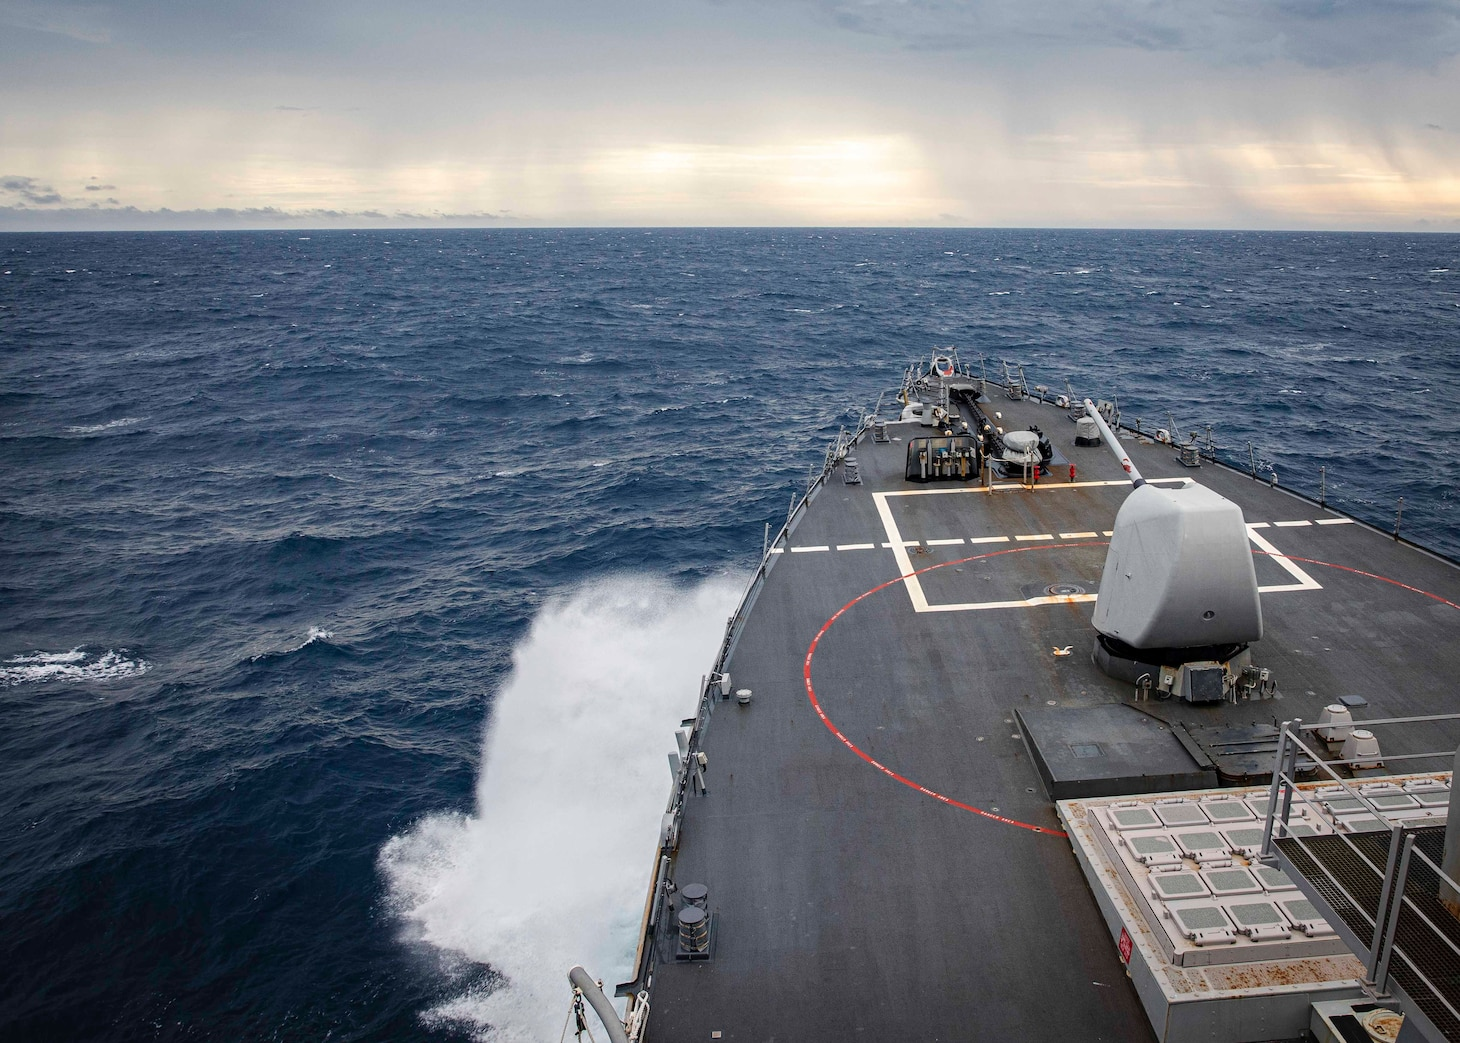 SOUTH CHINA SEA (Dec. 22, 2020) The Arleigh Burke-class guided-missile destroyer USS John S. McCain (DDG 56) transits through South China Sea while conducting routine underway operations. McCain is forward-deployed to the U.S. 7th Fleet area of operations in support of security and stability in the Indo-Pacific region. (U.S. Navy photo by Mass Communication Specialist 2nd Class Markus Castaneda)